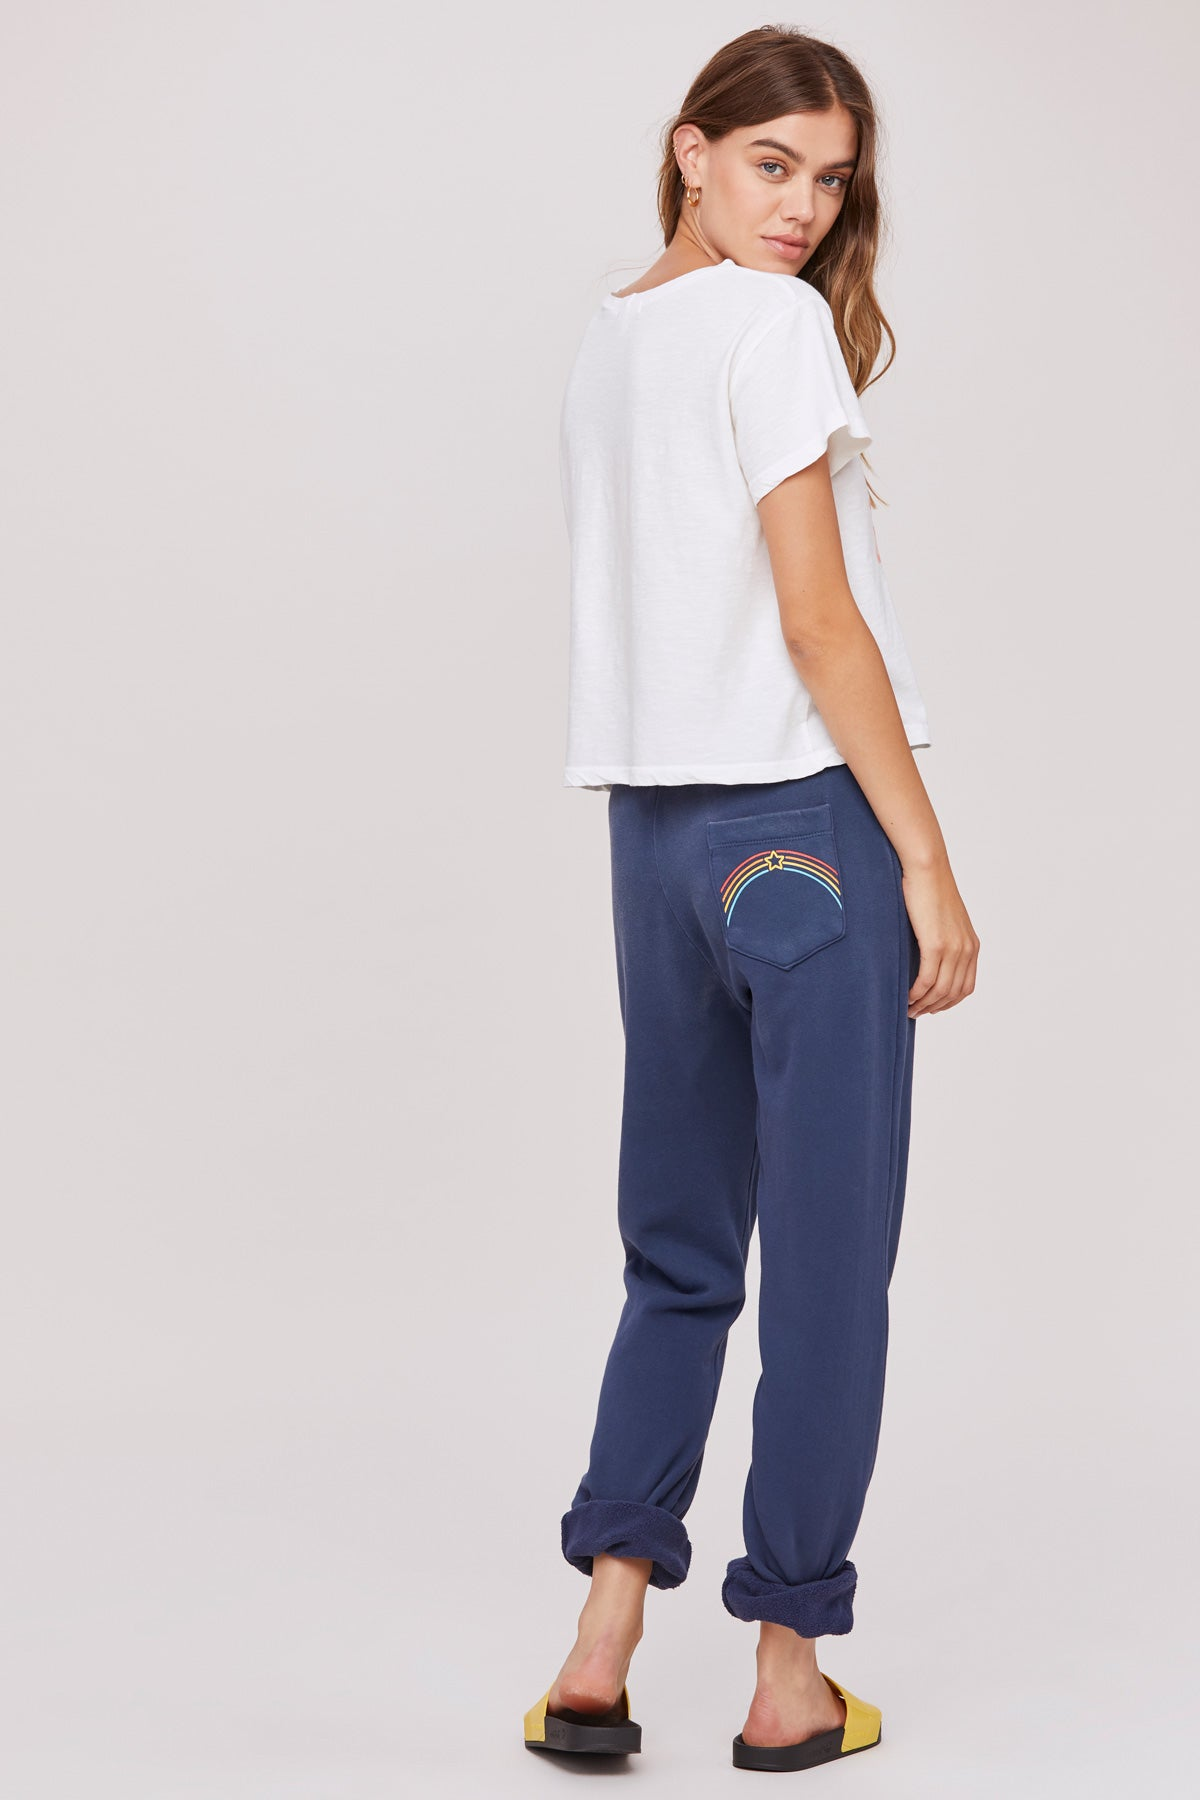 LNA Pocket Full Of Rainbows Sweat Pant in Navy Blue